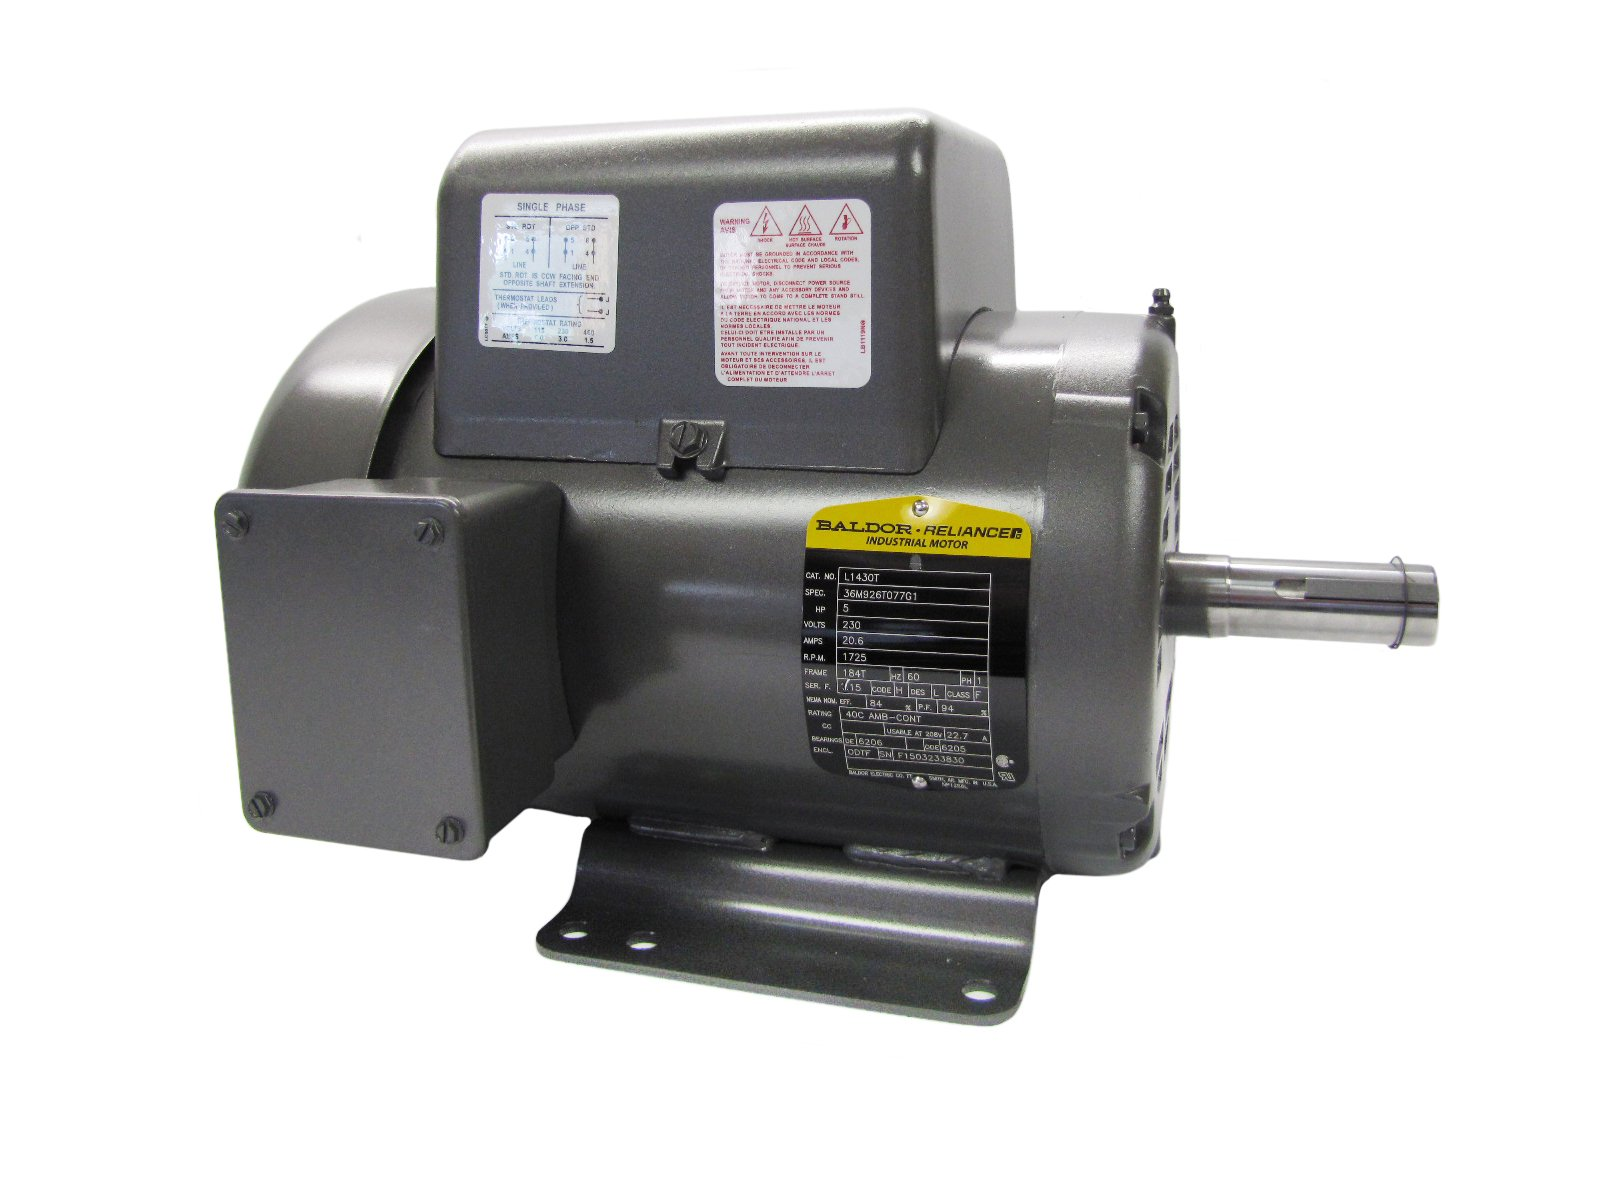 Baldor L1430T General Purpose AC Motor, Single Phase, 184T Frame, ODTF  Enclosure, 5Hp Output, 1725rpm, 60Hz, 230V Voltage: Electronic Component  Motors: ...